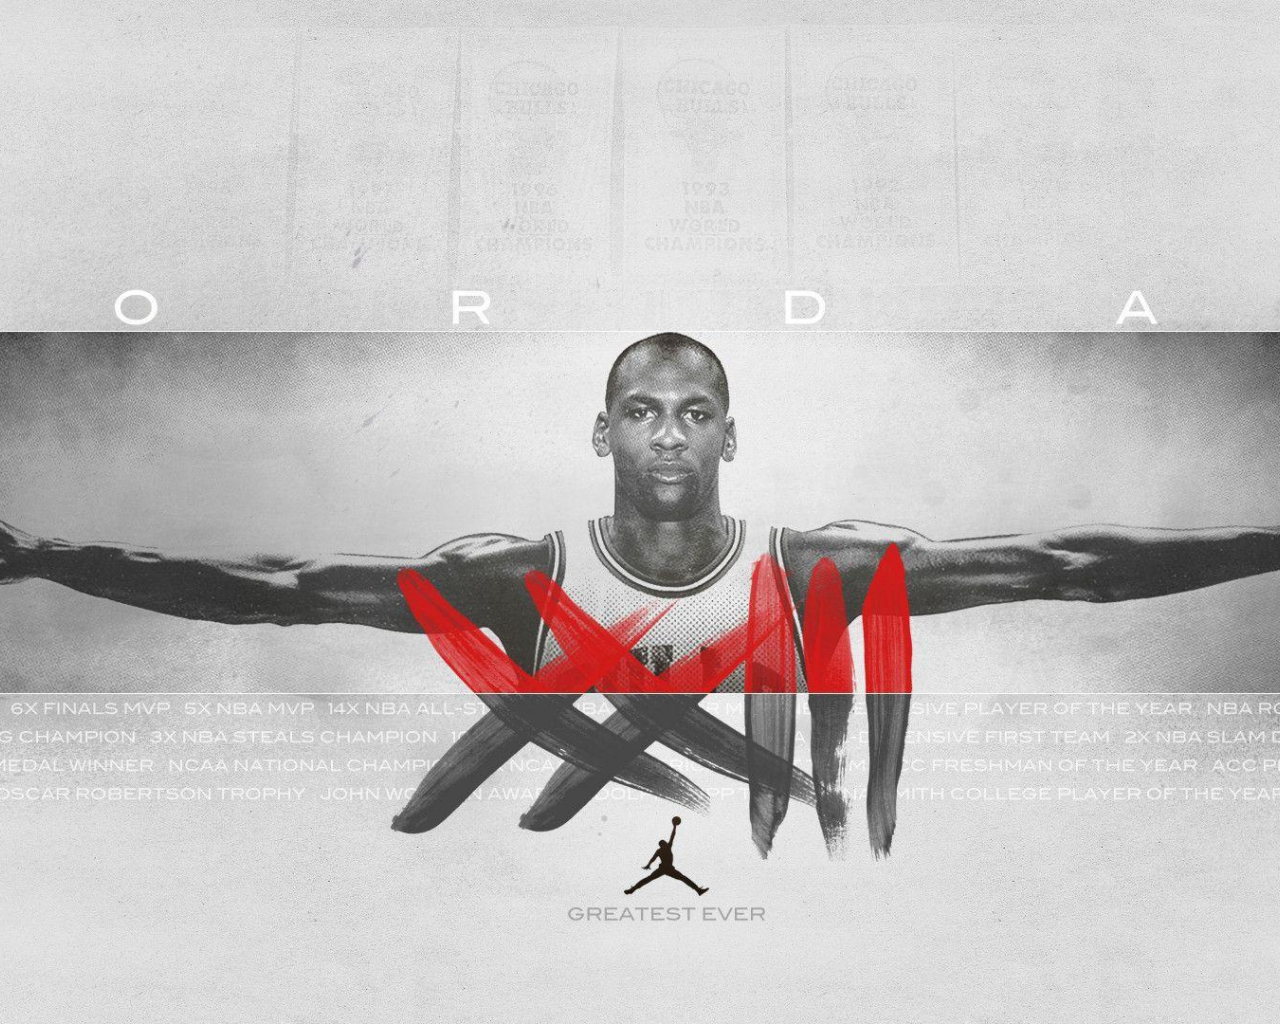 Free Download Michael Jordan Wallpapers Wings 1920x1080 For Your Desktop Mobile Tablet Explore 63 Jordan Wings Wallpaper Jordan Wallpaper Hd Nike Wallpaper Air Jordan Wallpaper